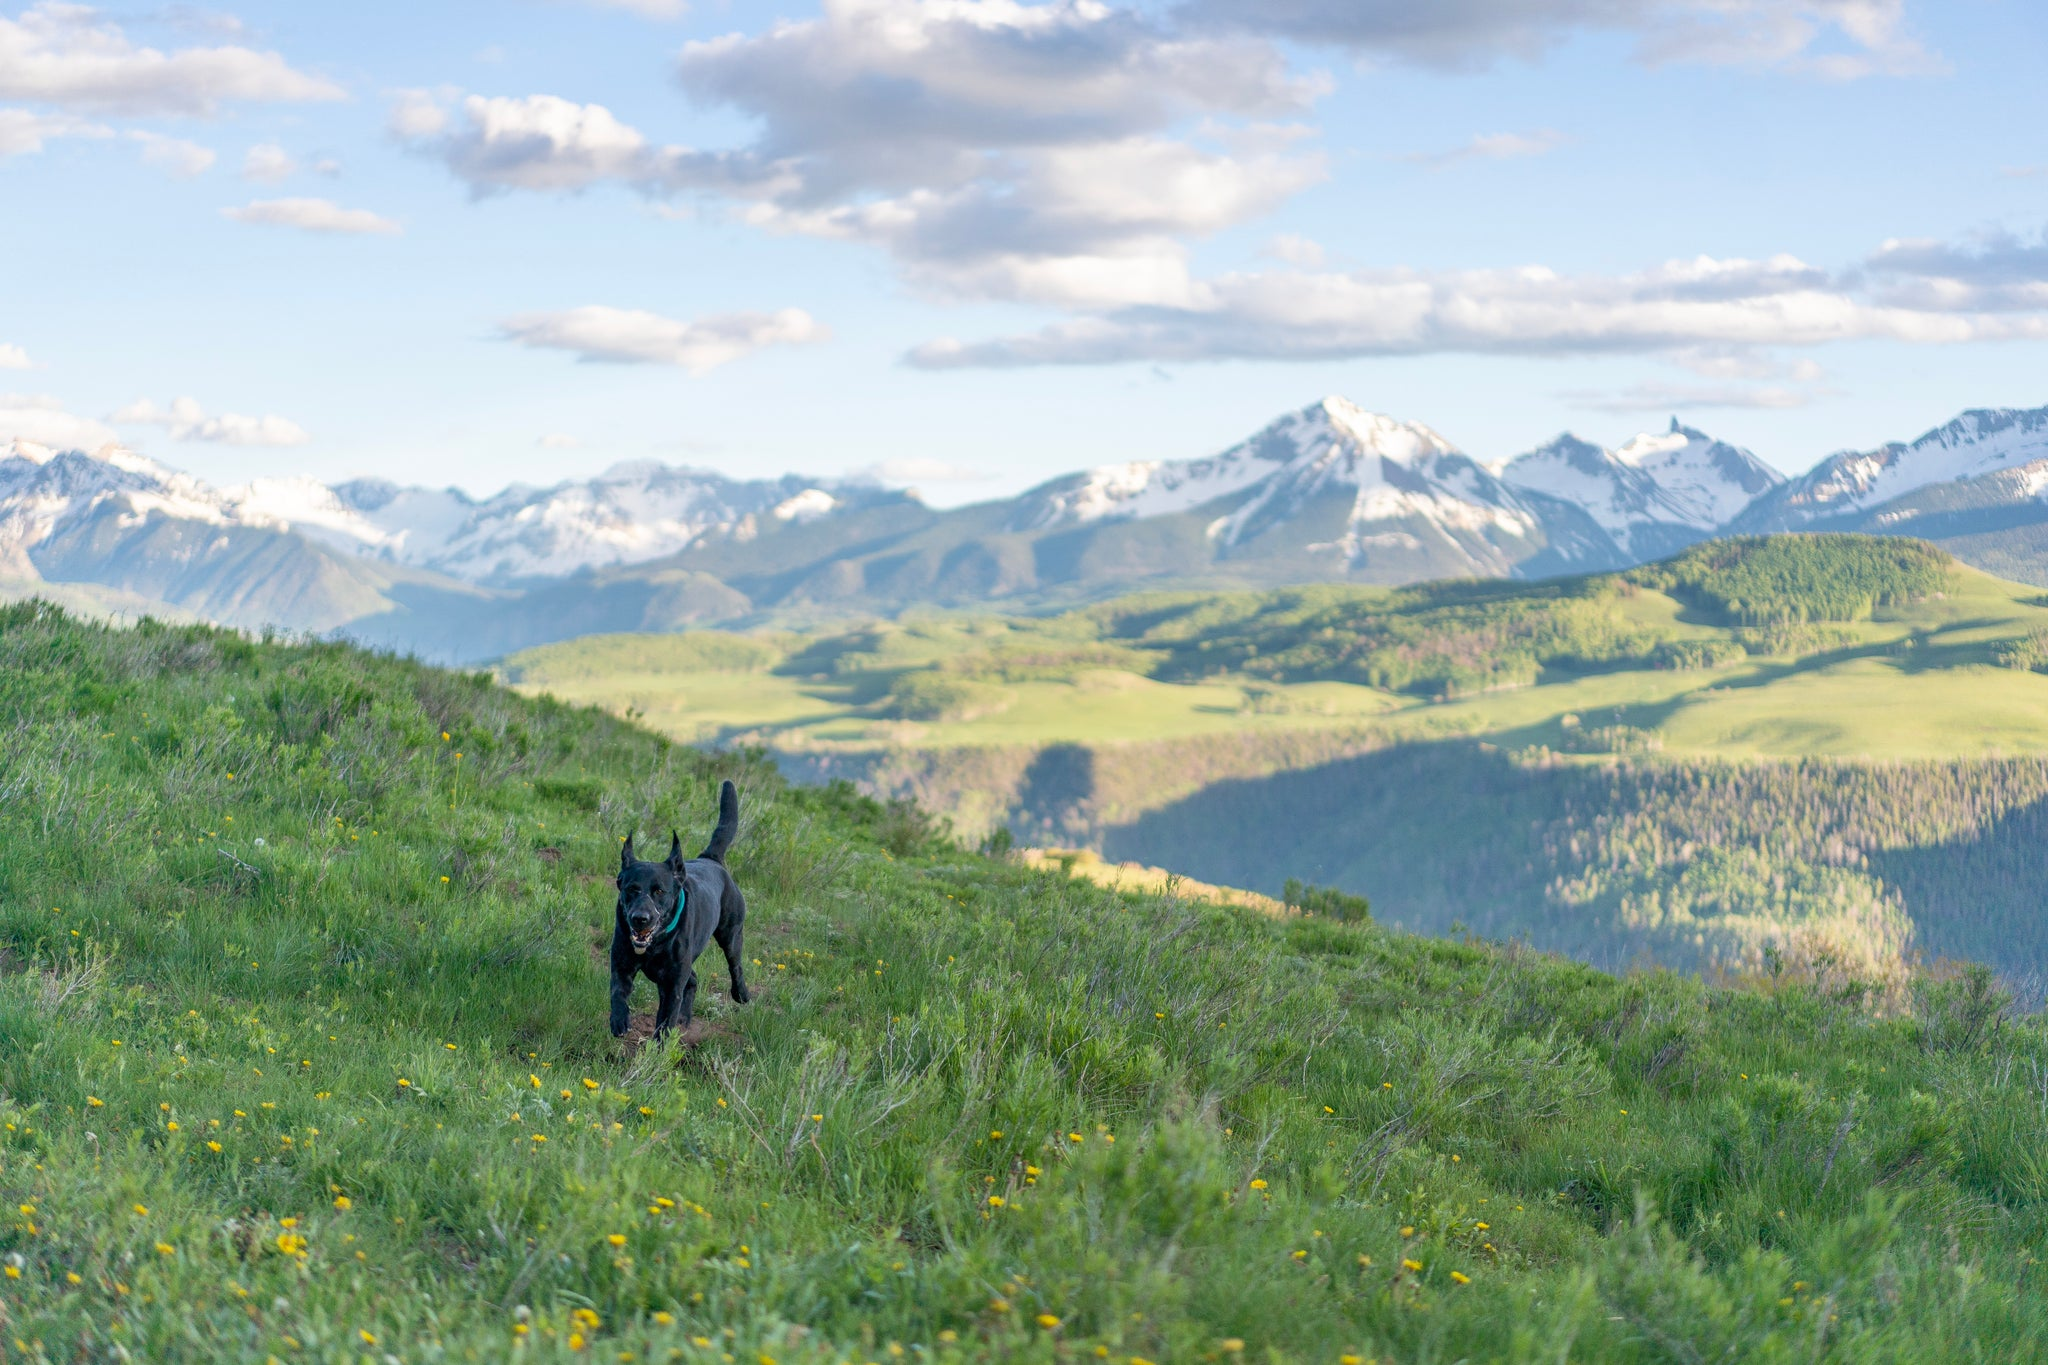 Dog running through a field with mountains in the backdrop - guide for no more lost dogs, how to keep dogs from escaping - Atlas Pet Company